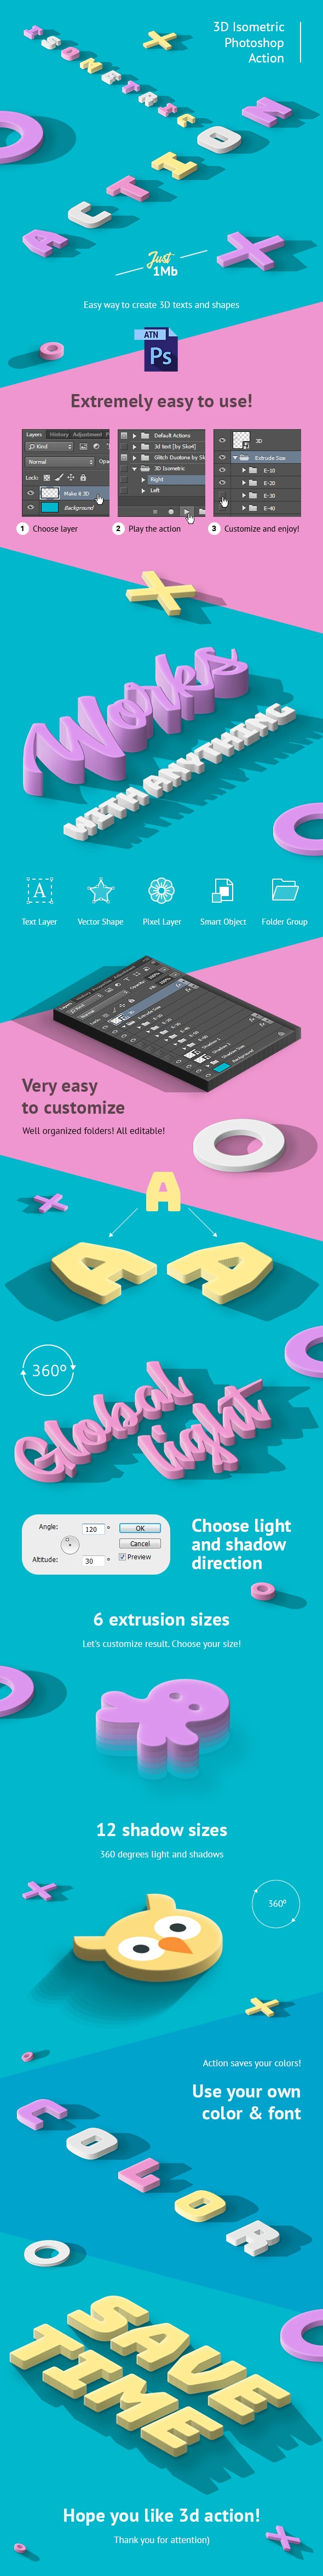 3D Isometric Photoshop Action - Text Effects Actions